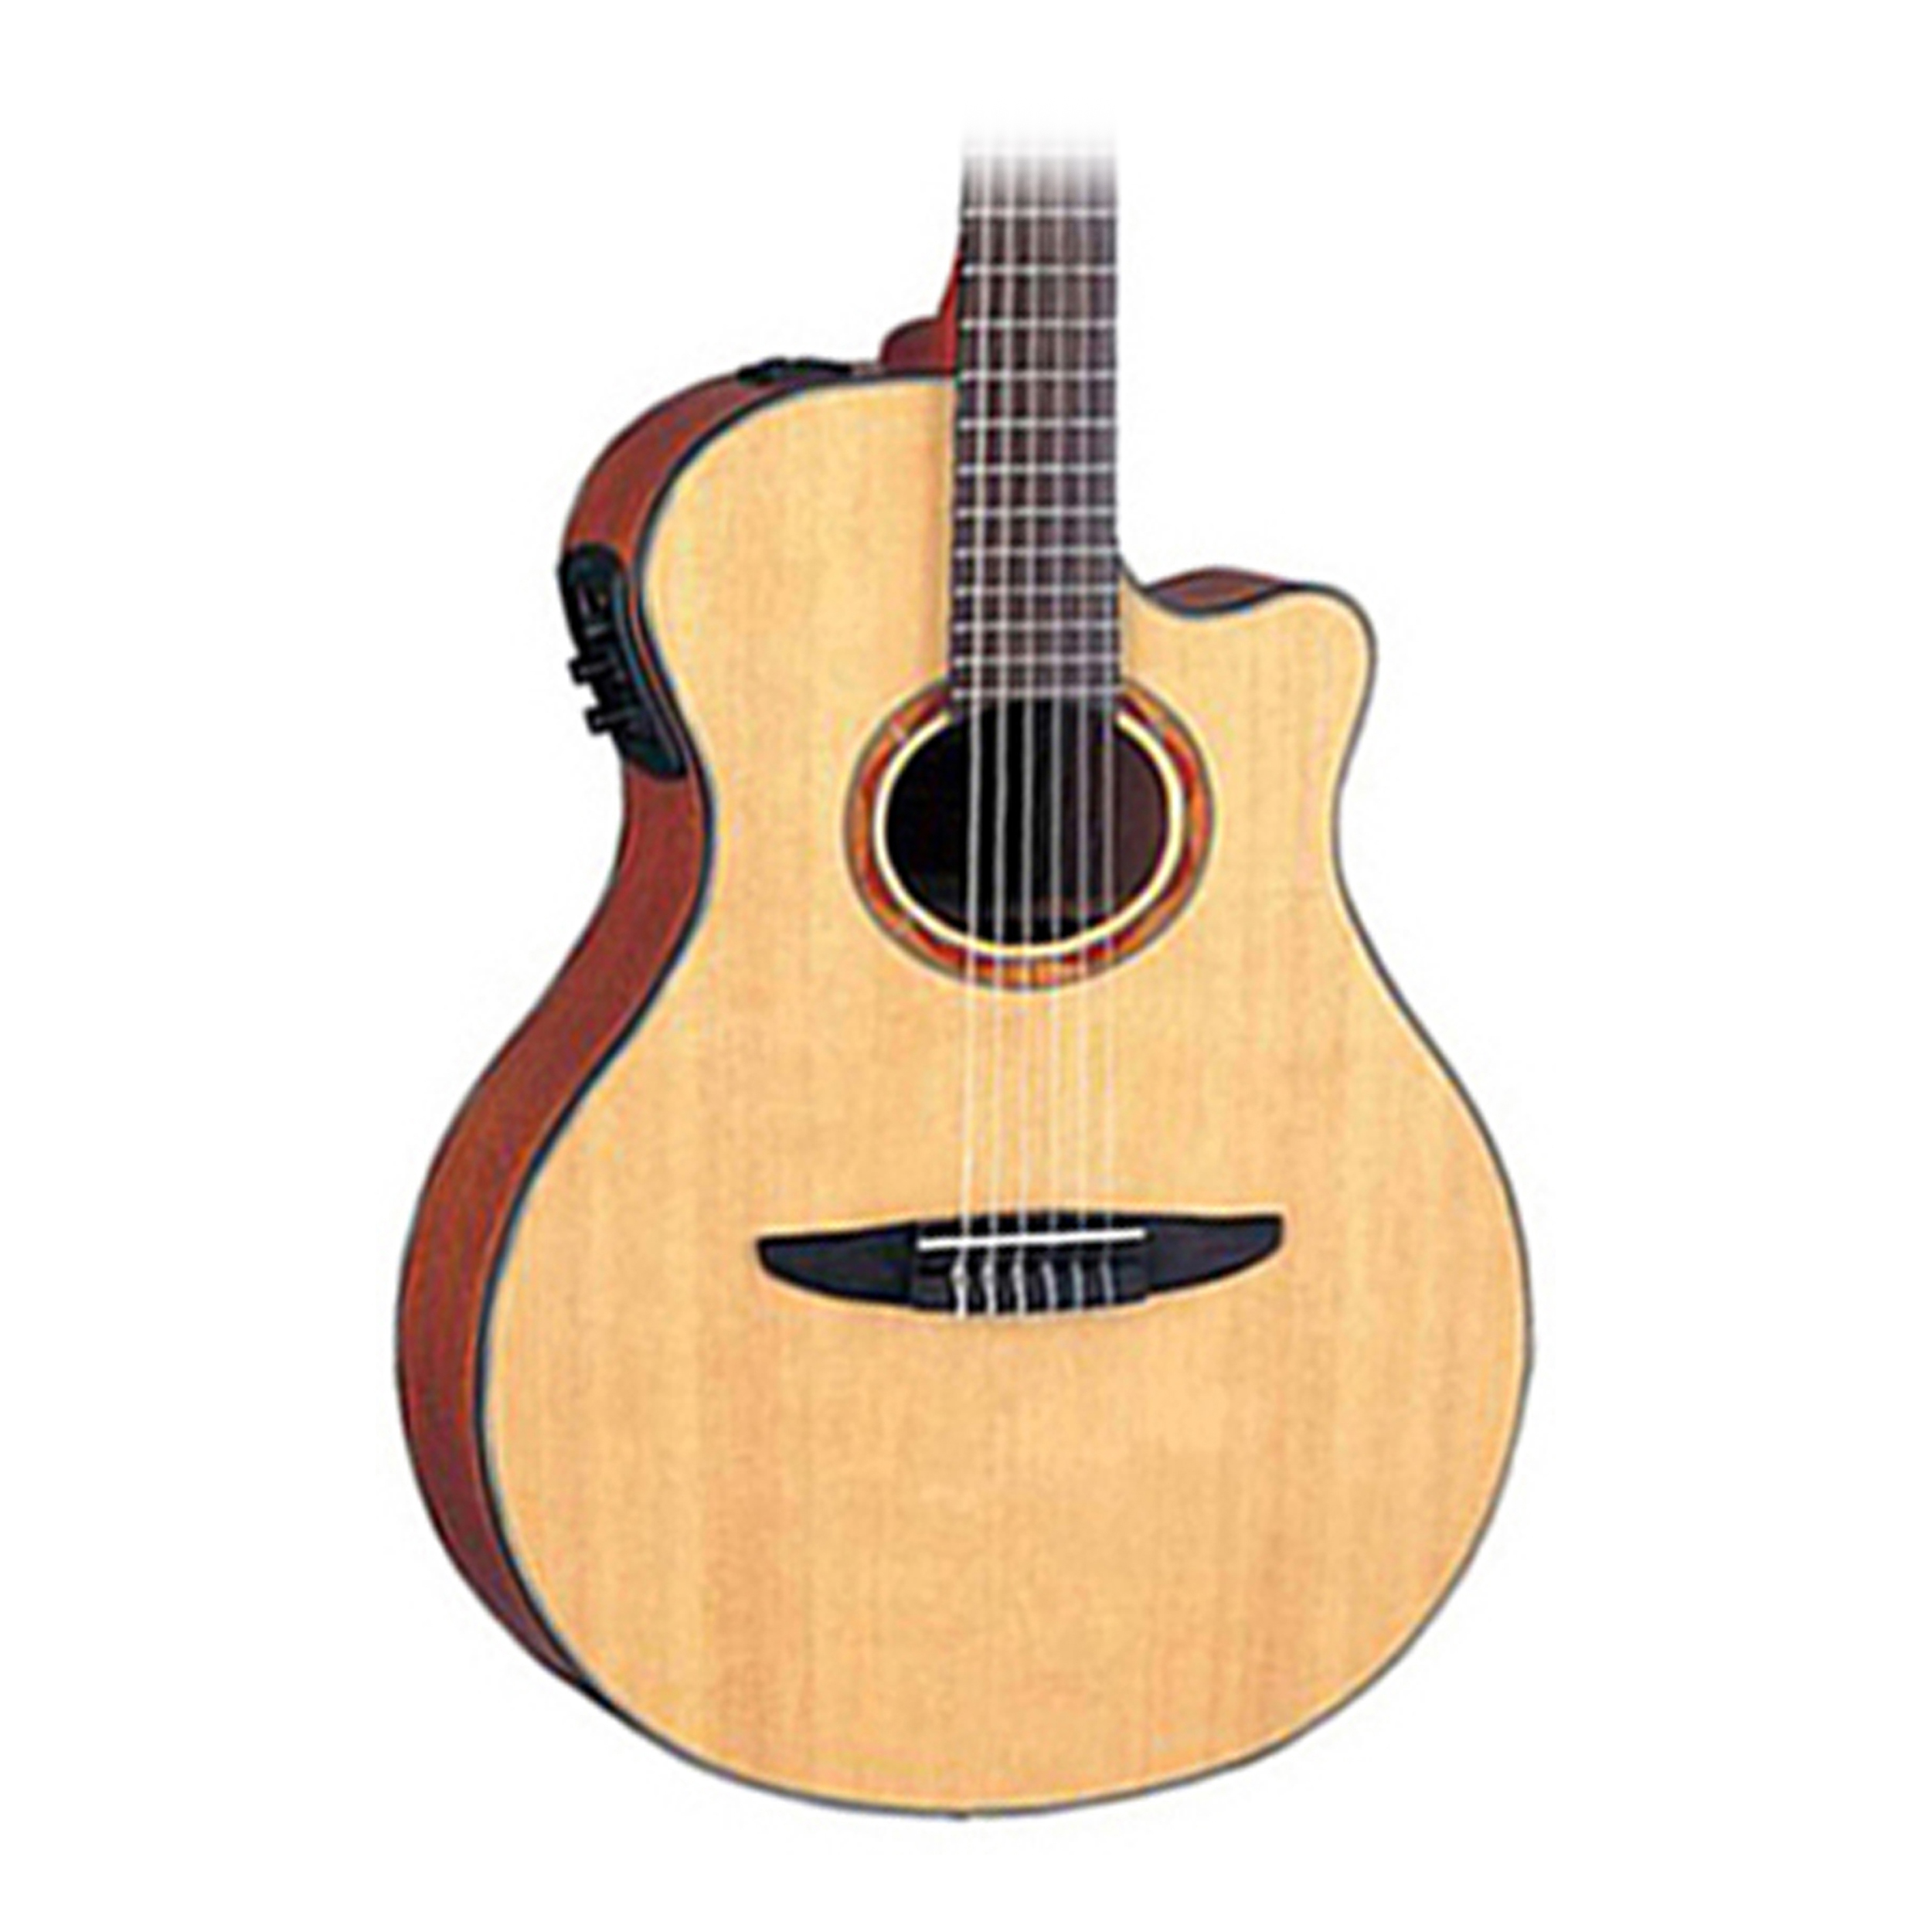 yamaha ntx700 nylon string acoustic electric guitar. Black Bedroom Furniture Sets. Home Design Ideas